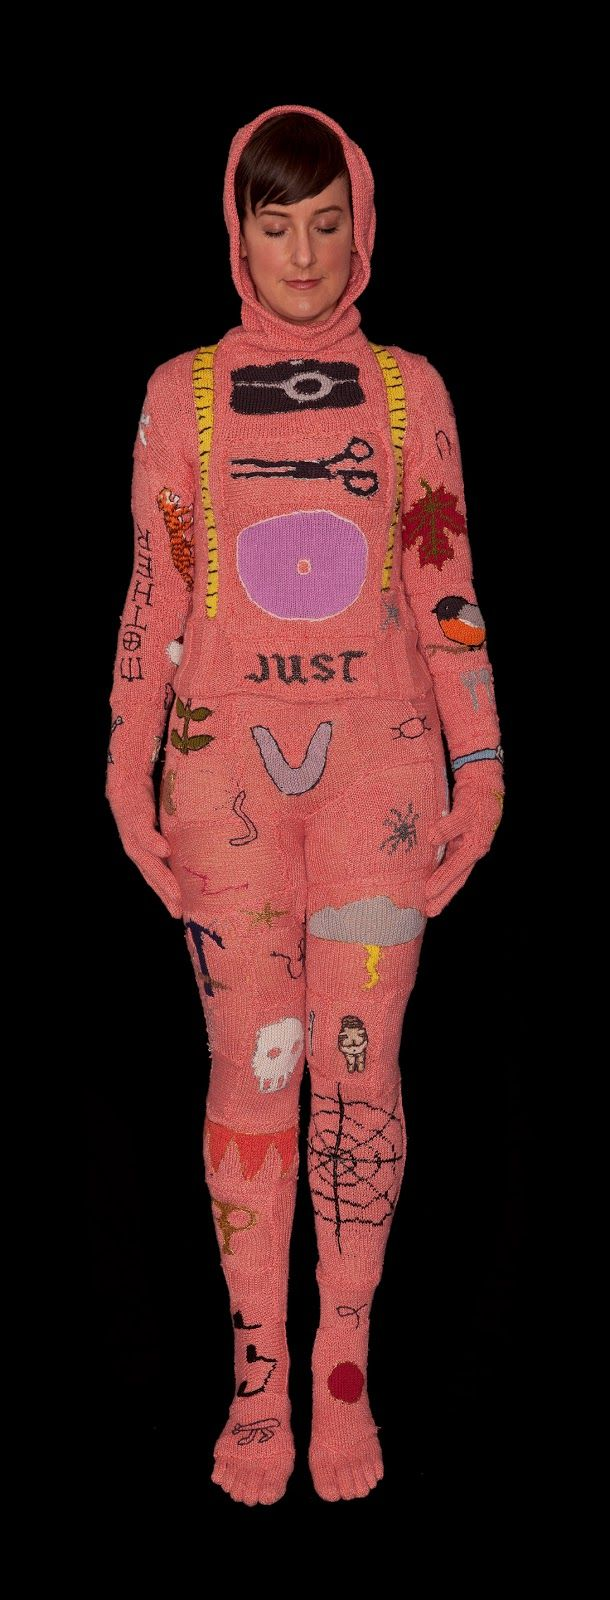 Knitted burial suit by Kate Just